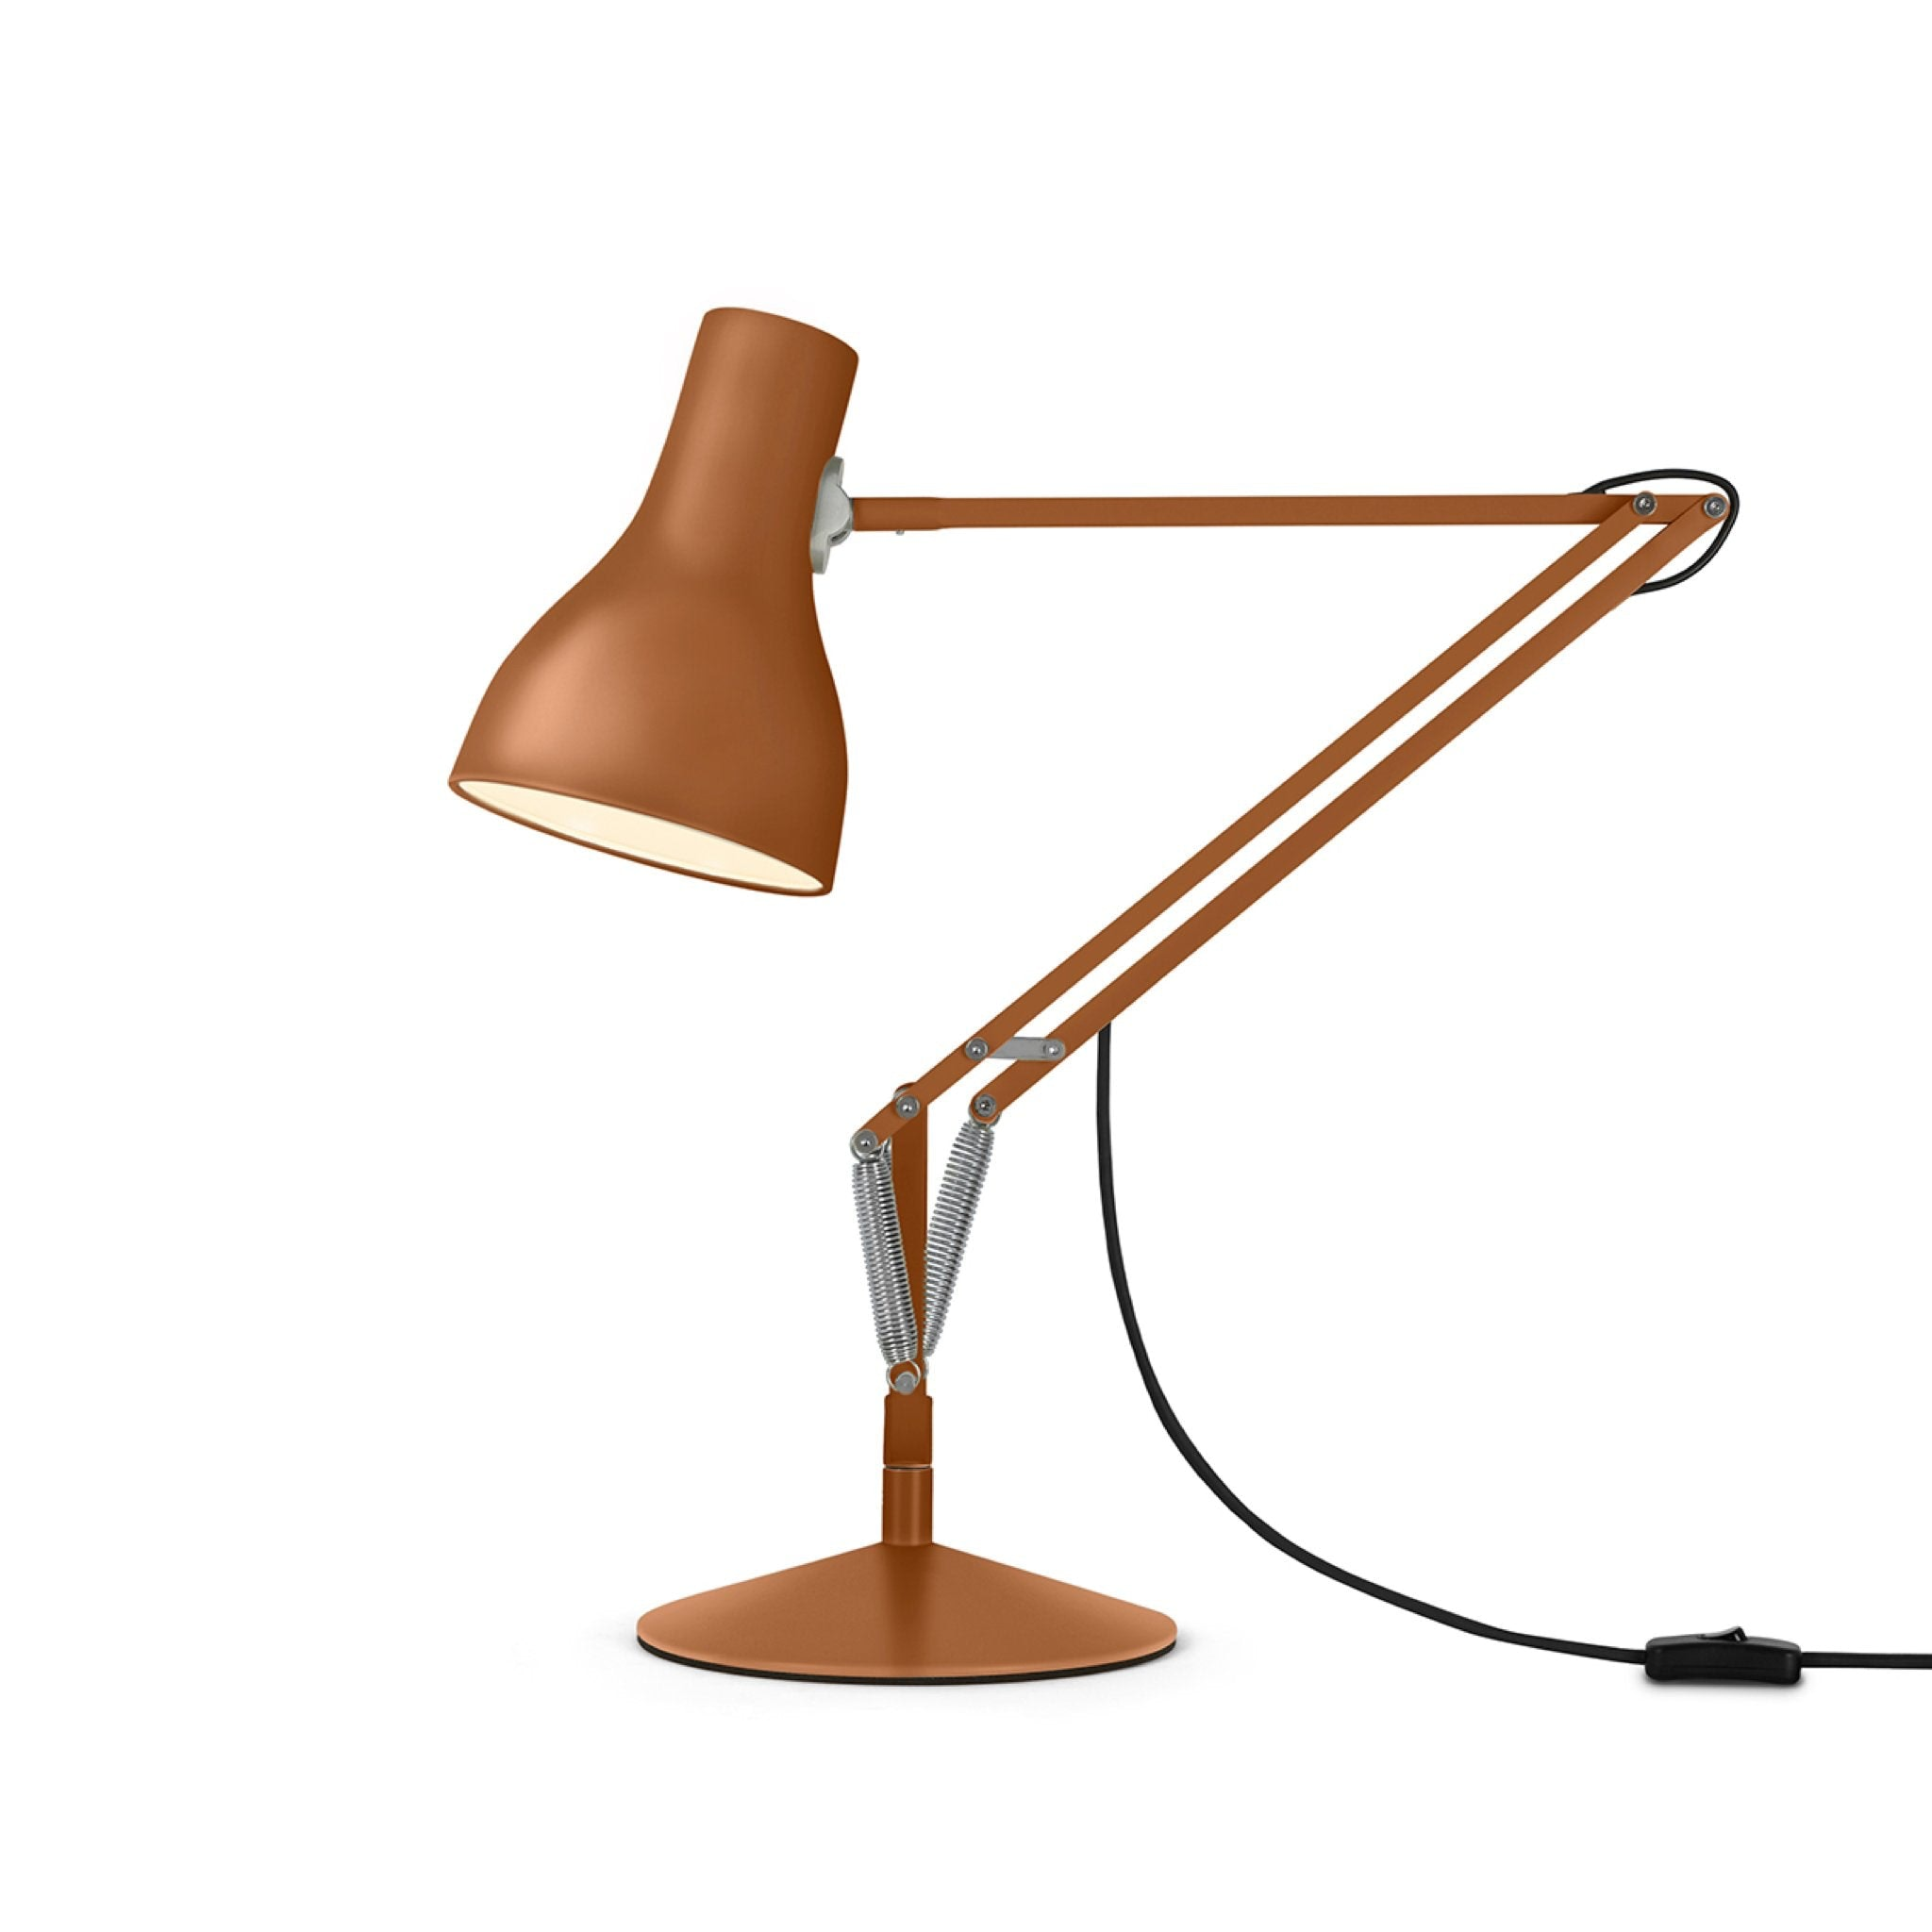 Type 75 Desk Lamp Sienna Edition by Margaret Howell for Anglepoise